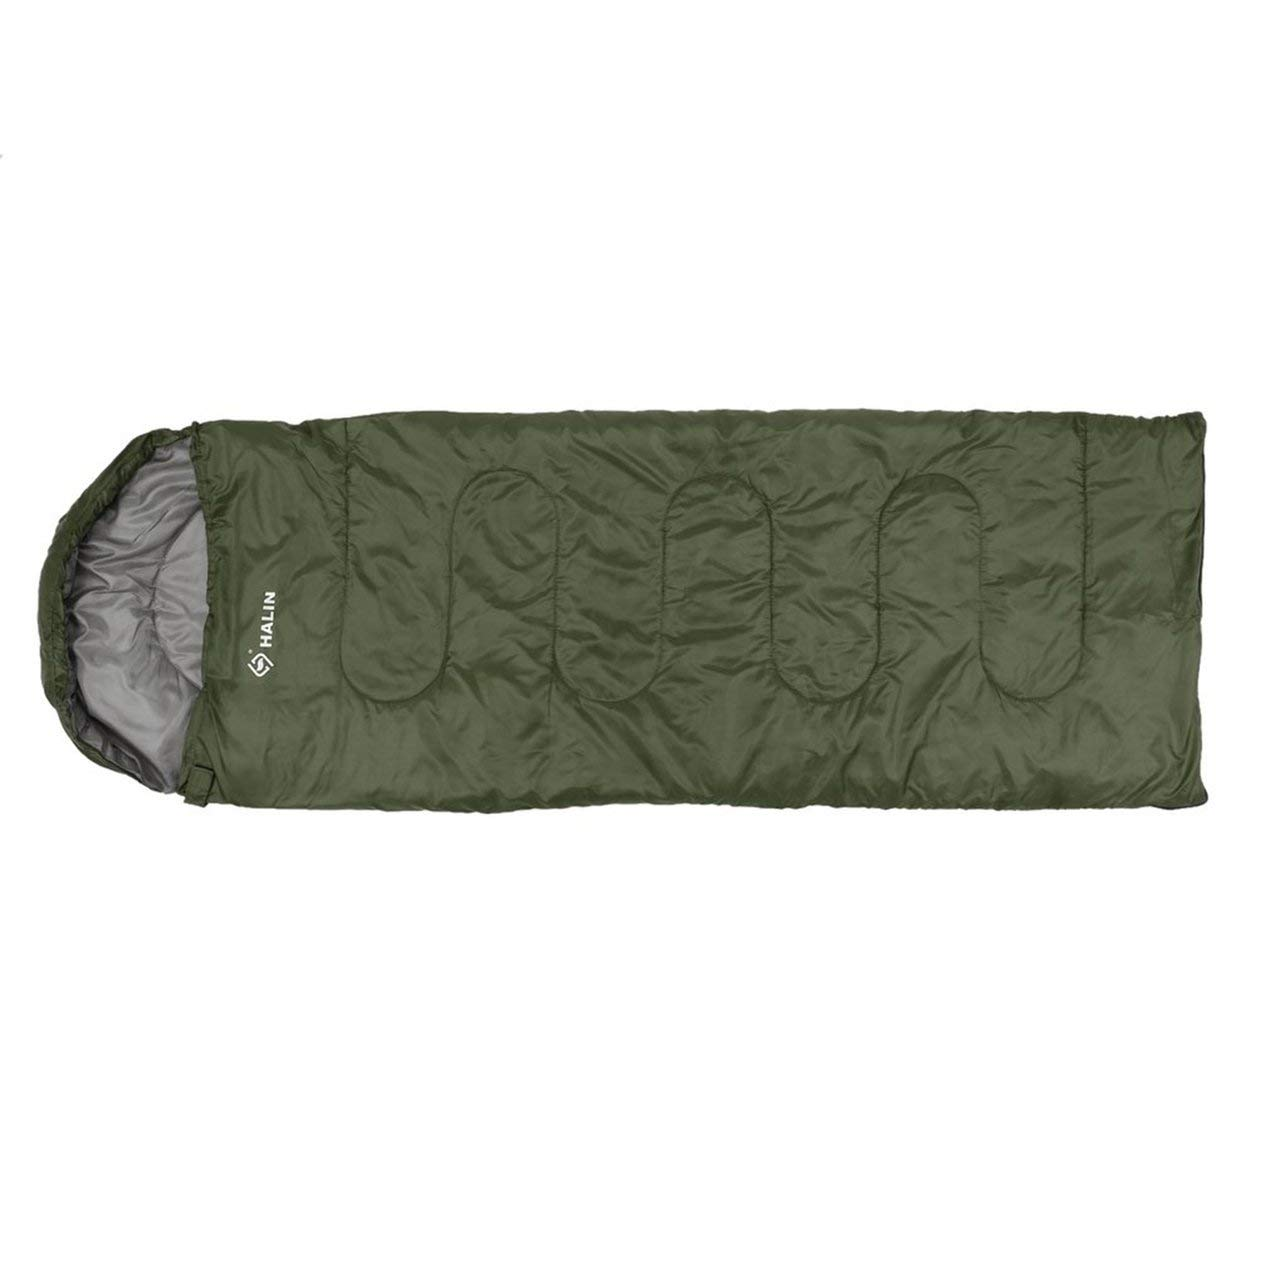 Halin Outdoor Envelope Sleeping Bag Portable Warm Cozy Camping Hiking Hooded Sleeping Bag with Storage Bag HS205